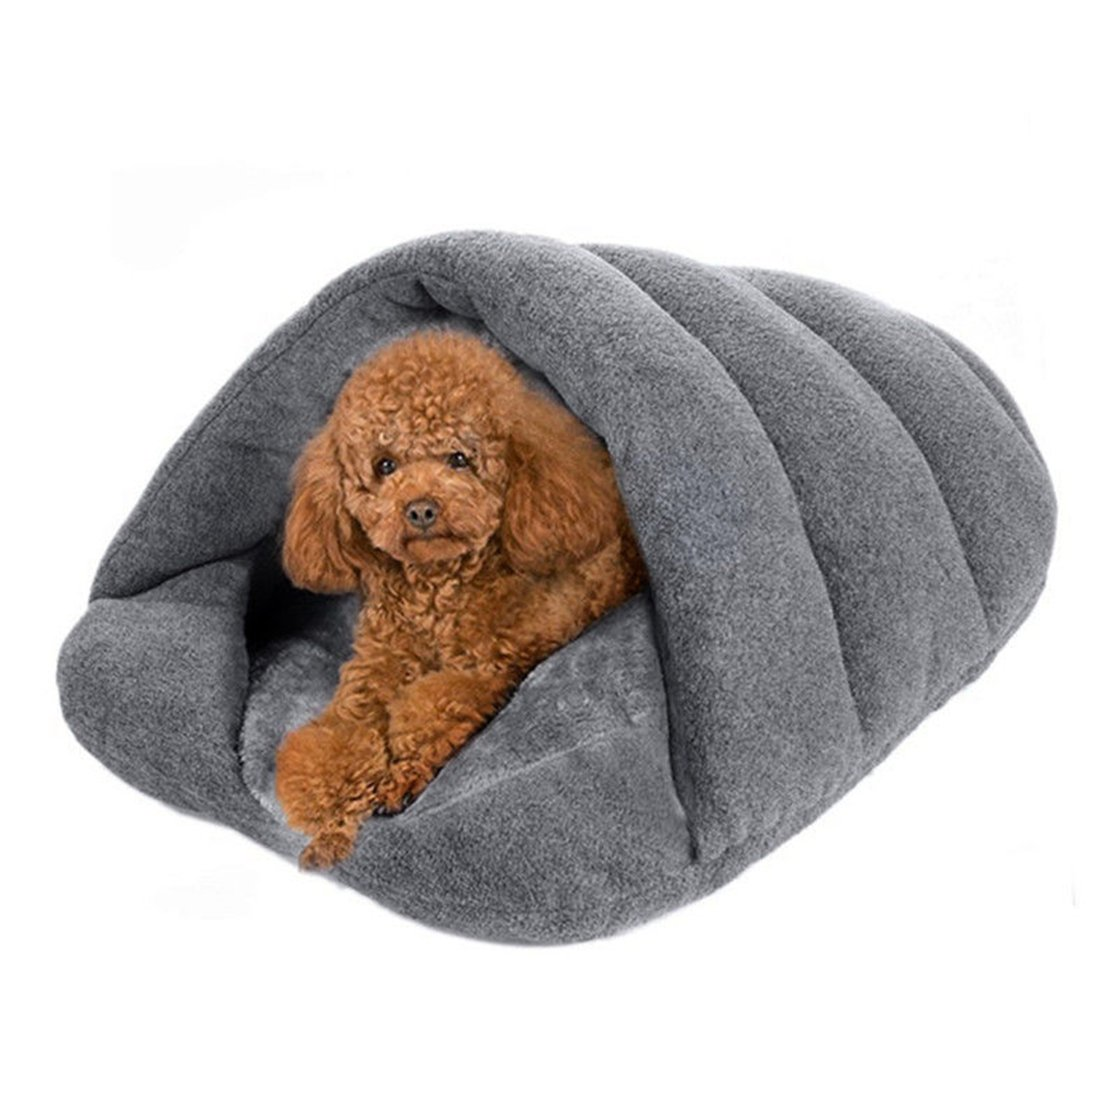 ed6d1bb329bf Pet Dog Cat Bed Warm House Sleeping Bag Sleep Zone For Puppy Cat Rabbit Small  Animals Shearling Bed